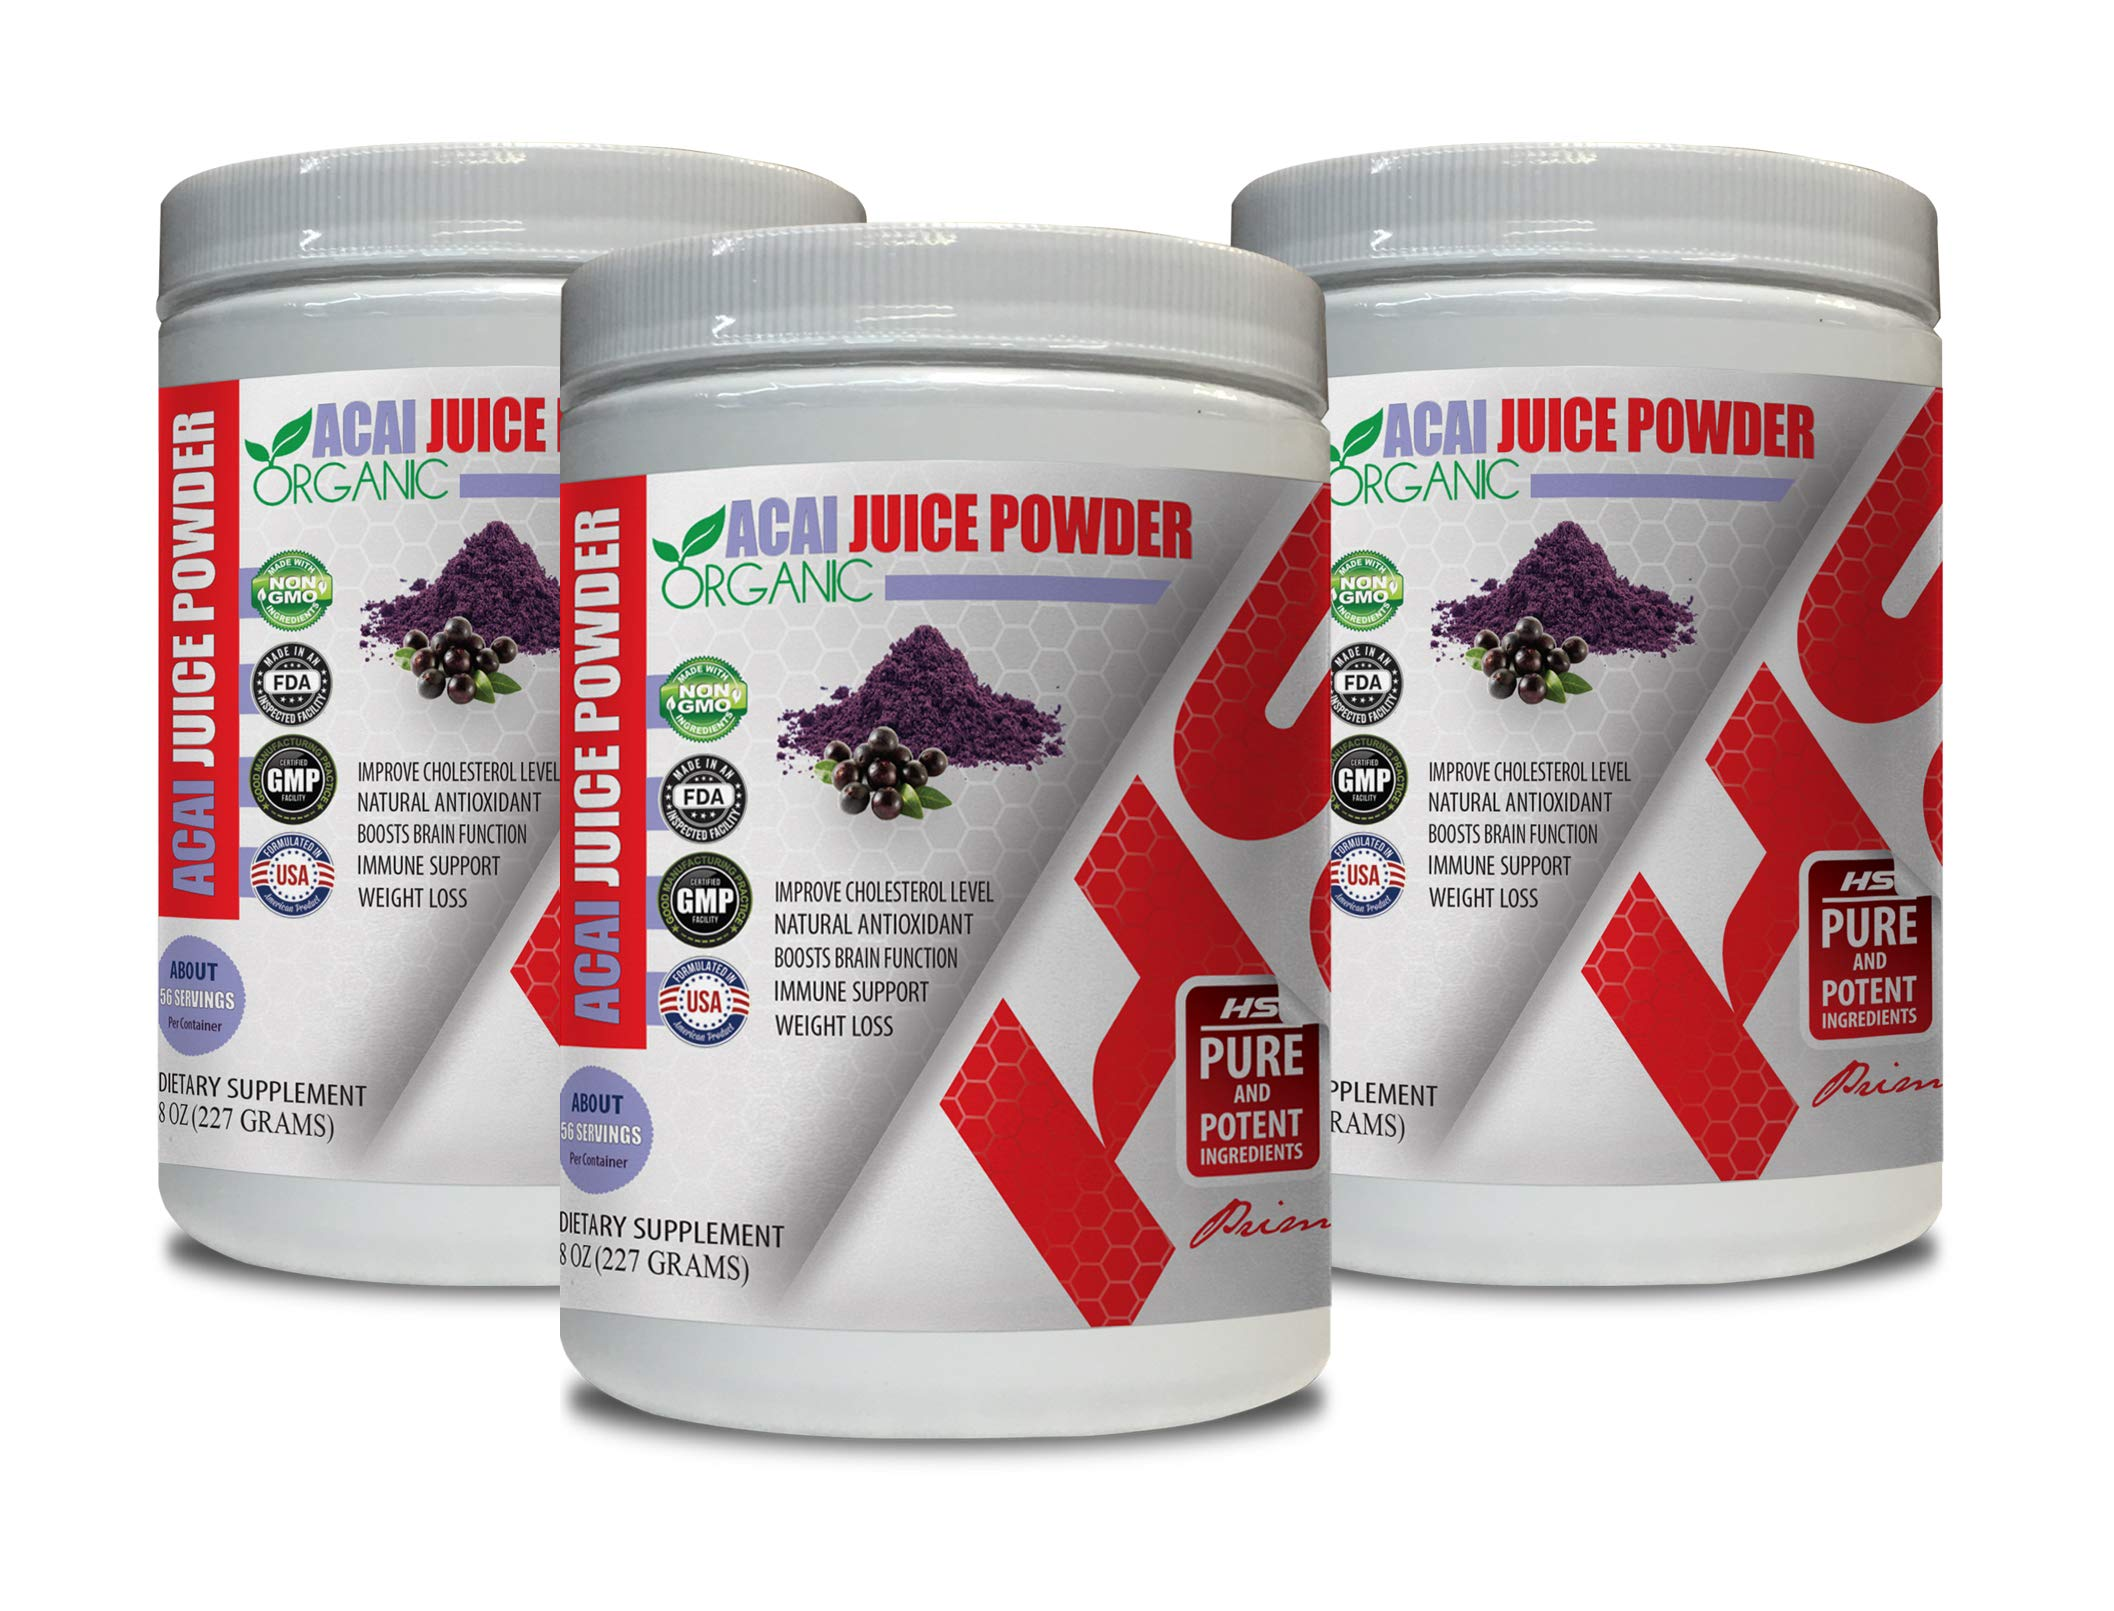 antioxidant Extreme Supplement - ACAI Juice Powder Organic - Natural ANTIOXIDANT - acai USA - 3 Cans 24 OZ (195 Servings)